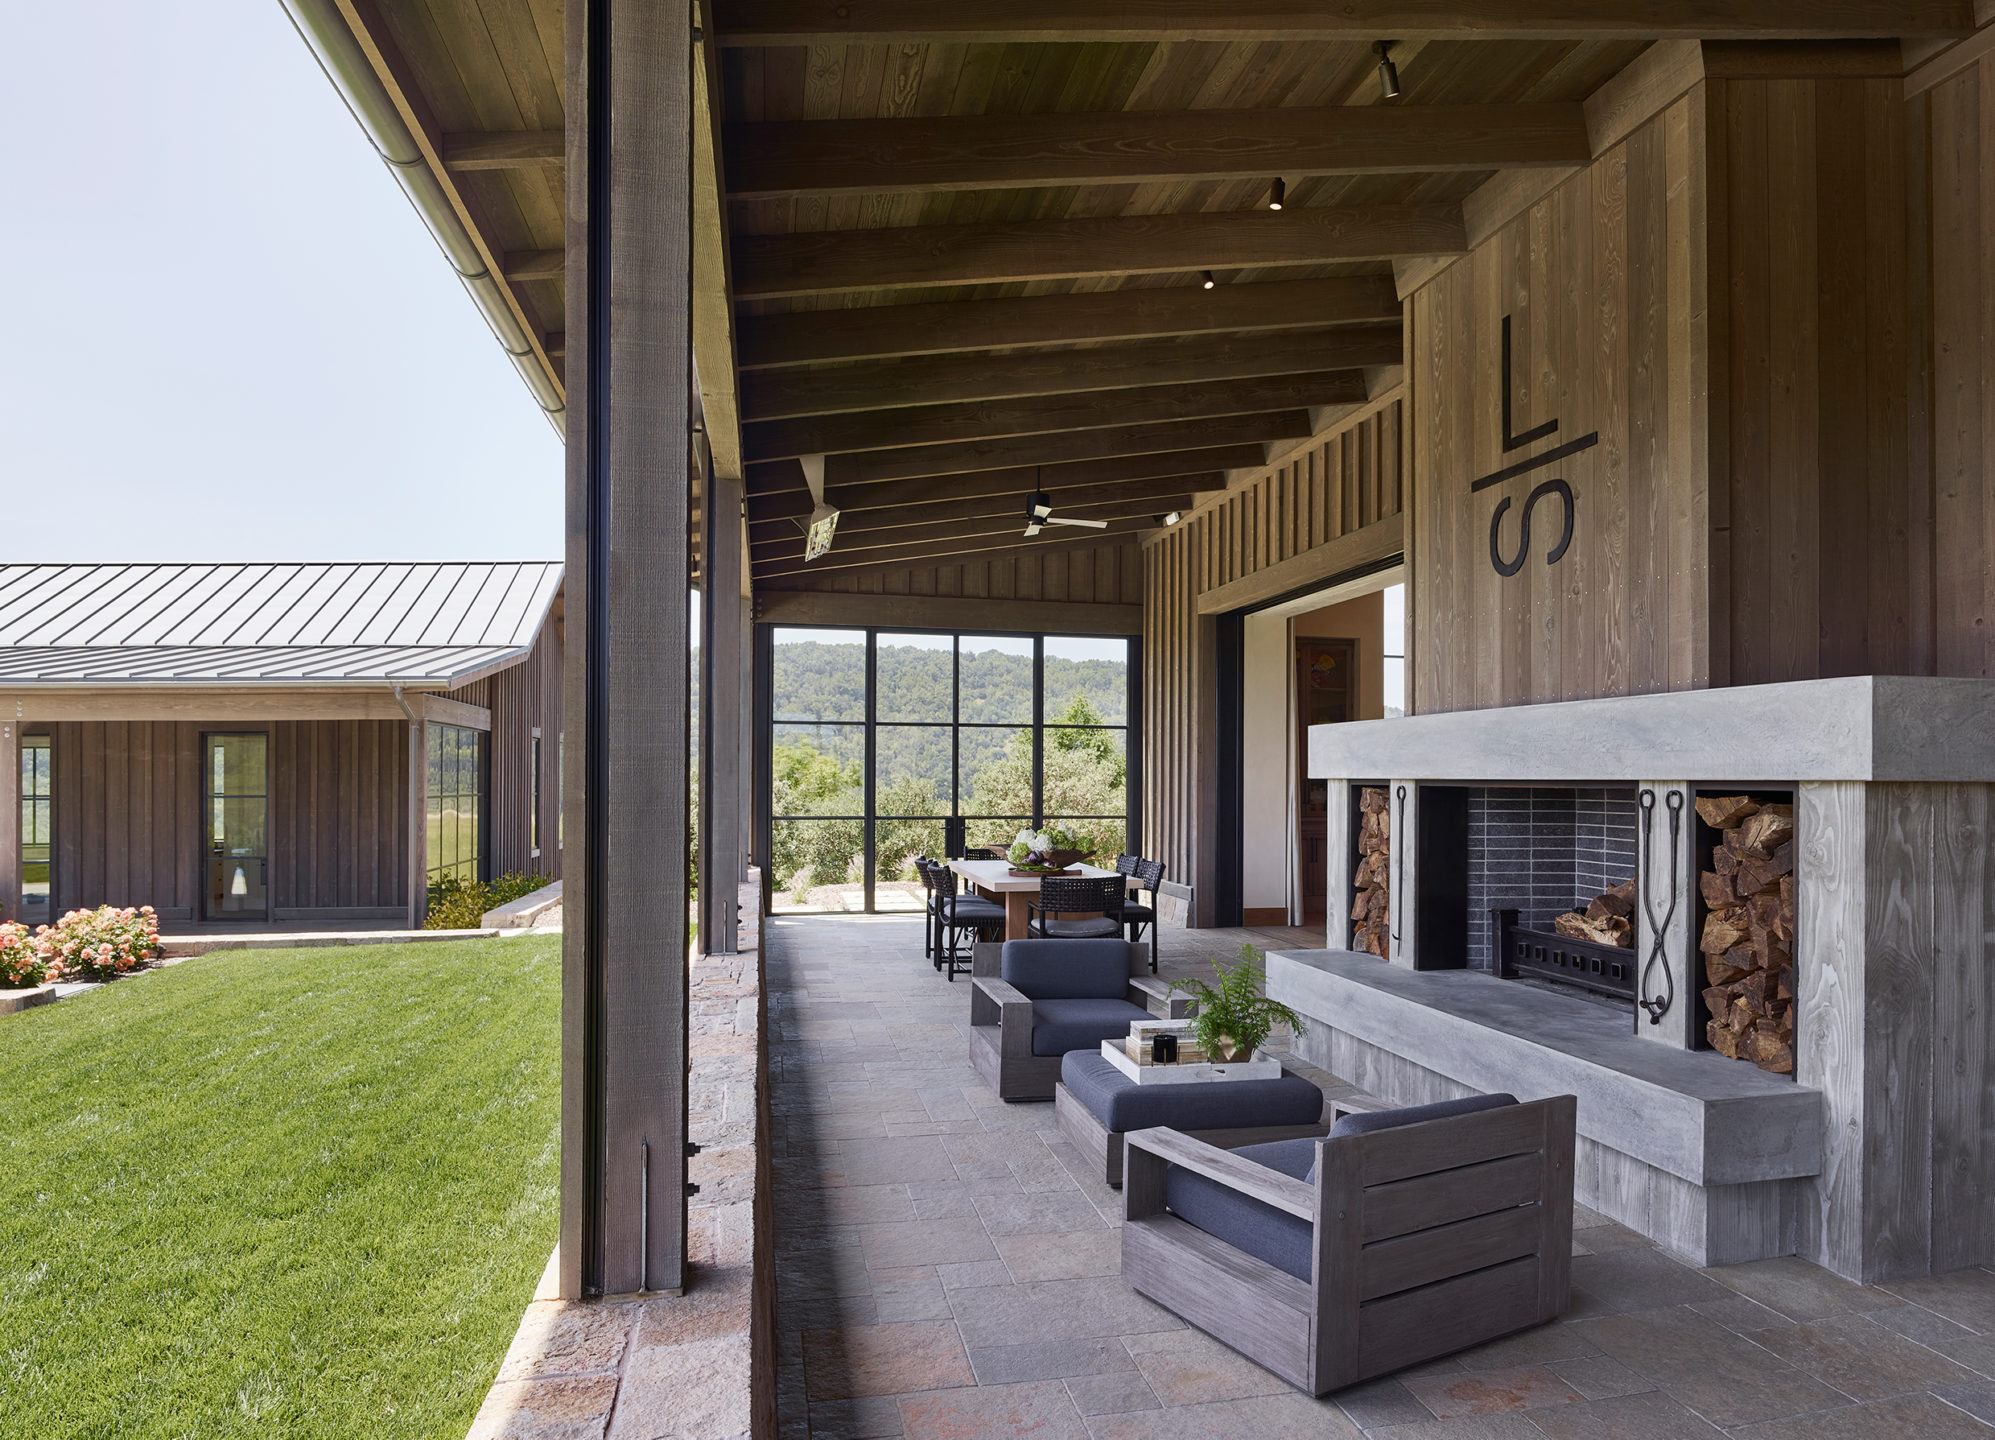 Jennifer_robins_interiors_projects_napa_valley_6.5_exterior_ext_fireplace_seating